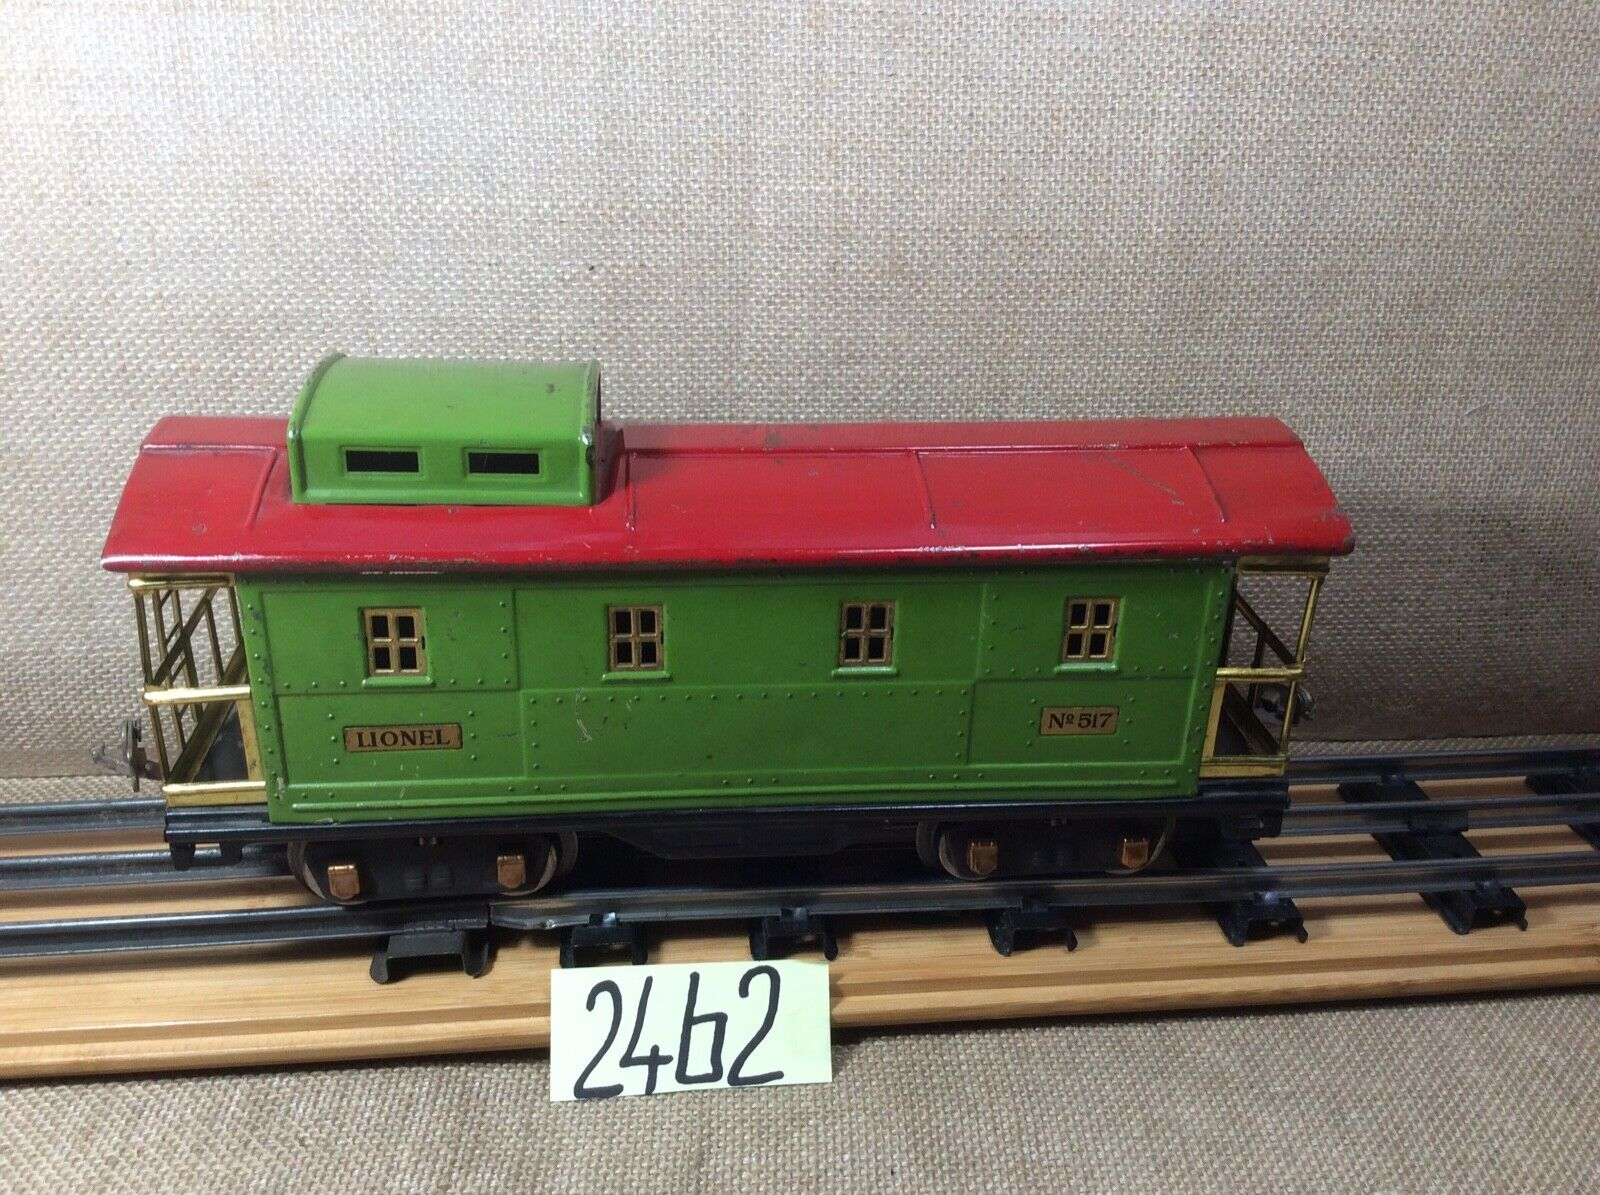 Lionel Standatd gauge caboose with red roof, lighted.